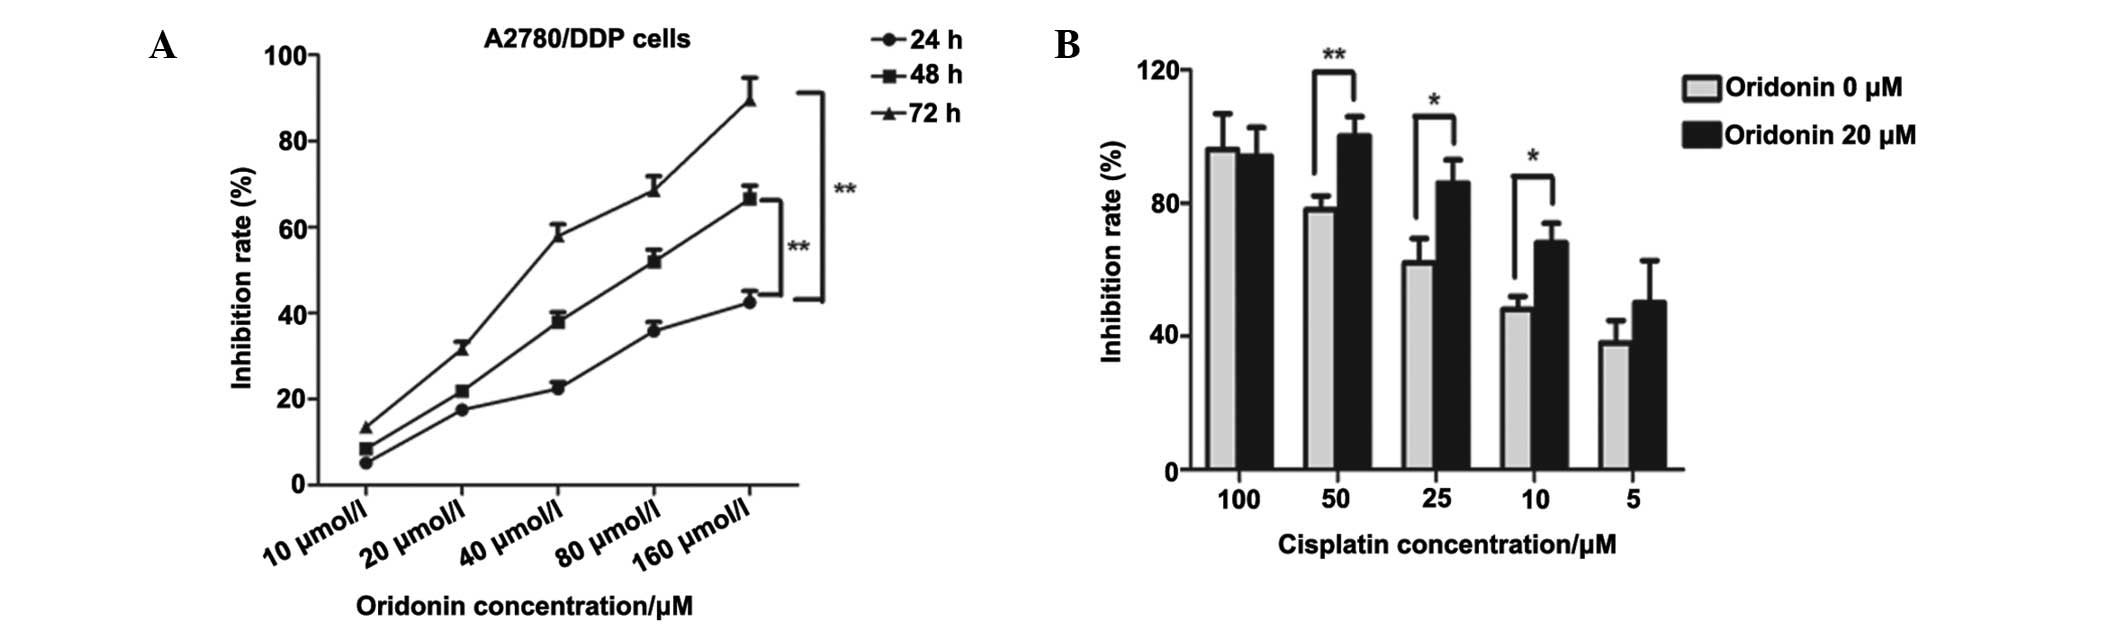 Oridonin Effectively Reverses Cisplatin Drug Resistance In Human Ovarian Cancer Cells Via Induction Of Cell Apoptosis And Inhibition Of Matrix Metalloproteinase Expression